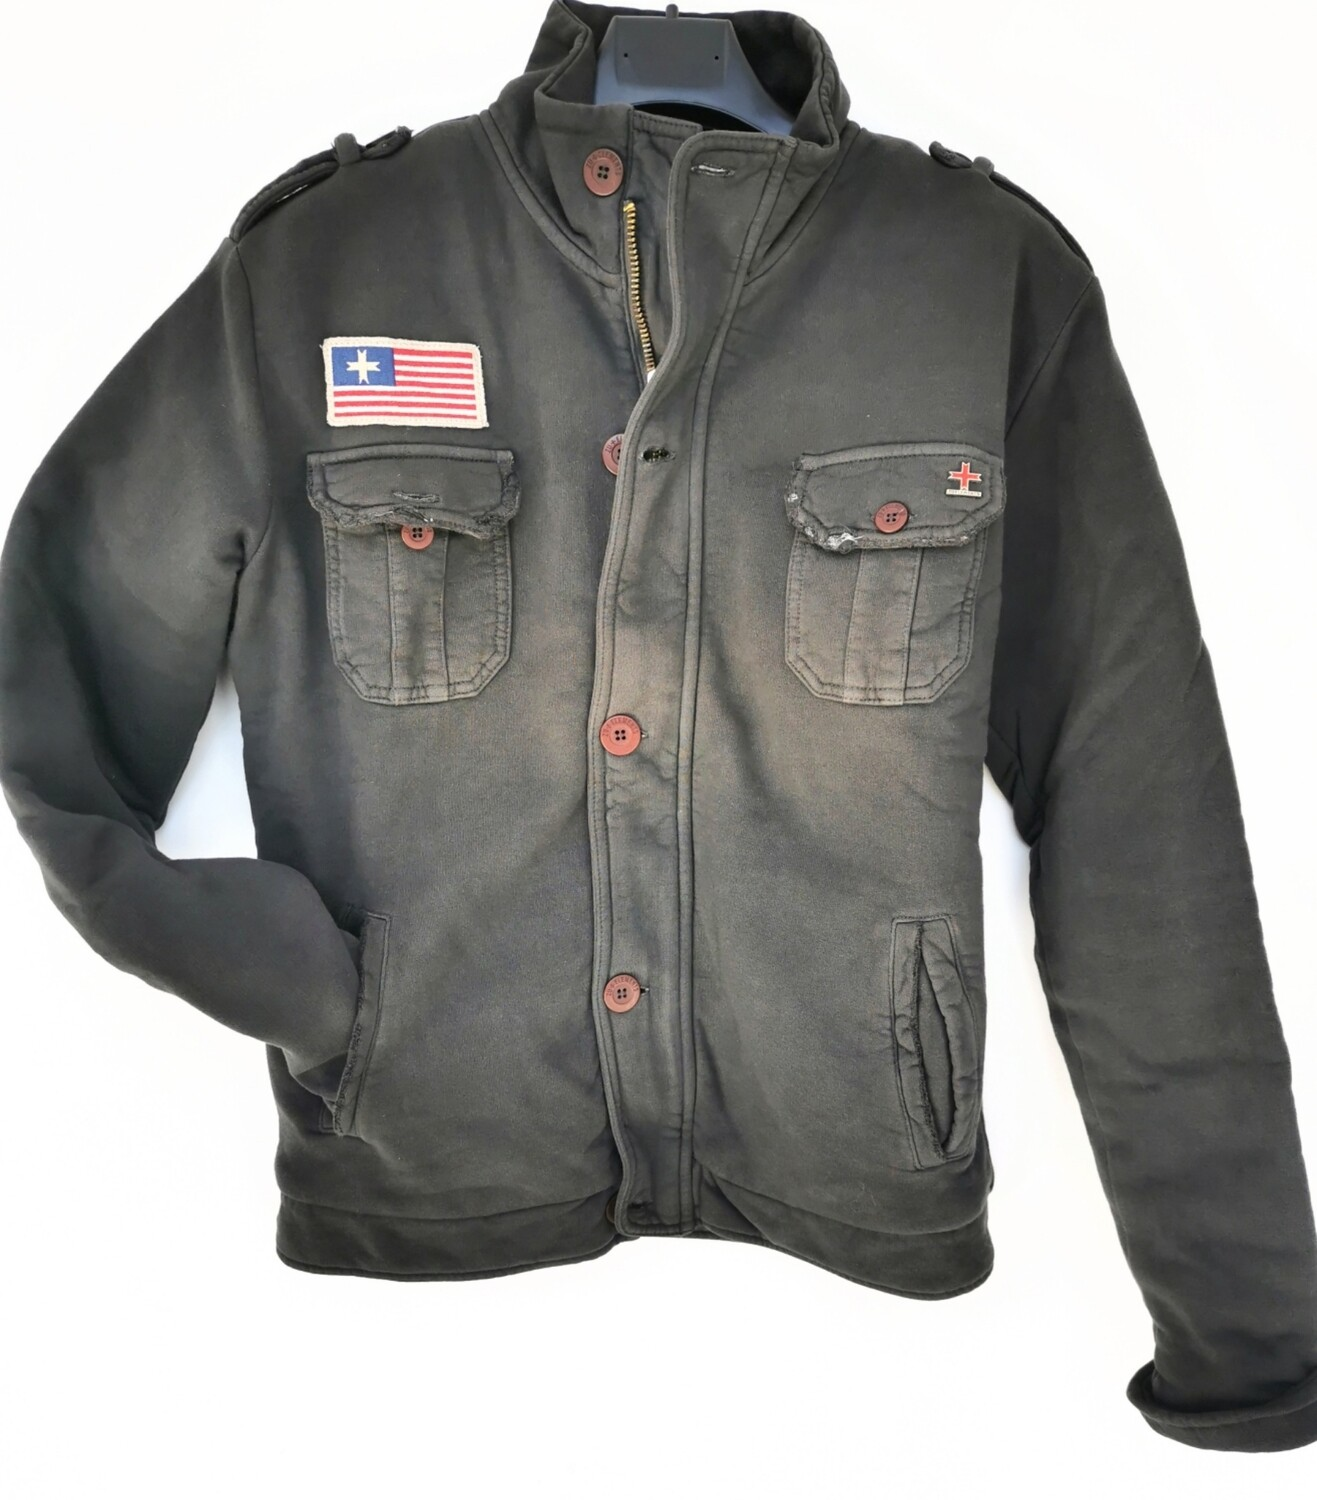 Fleece jacket with front pockets